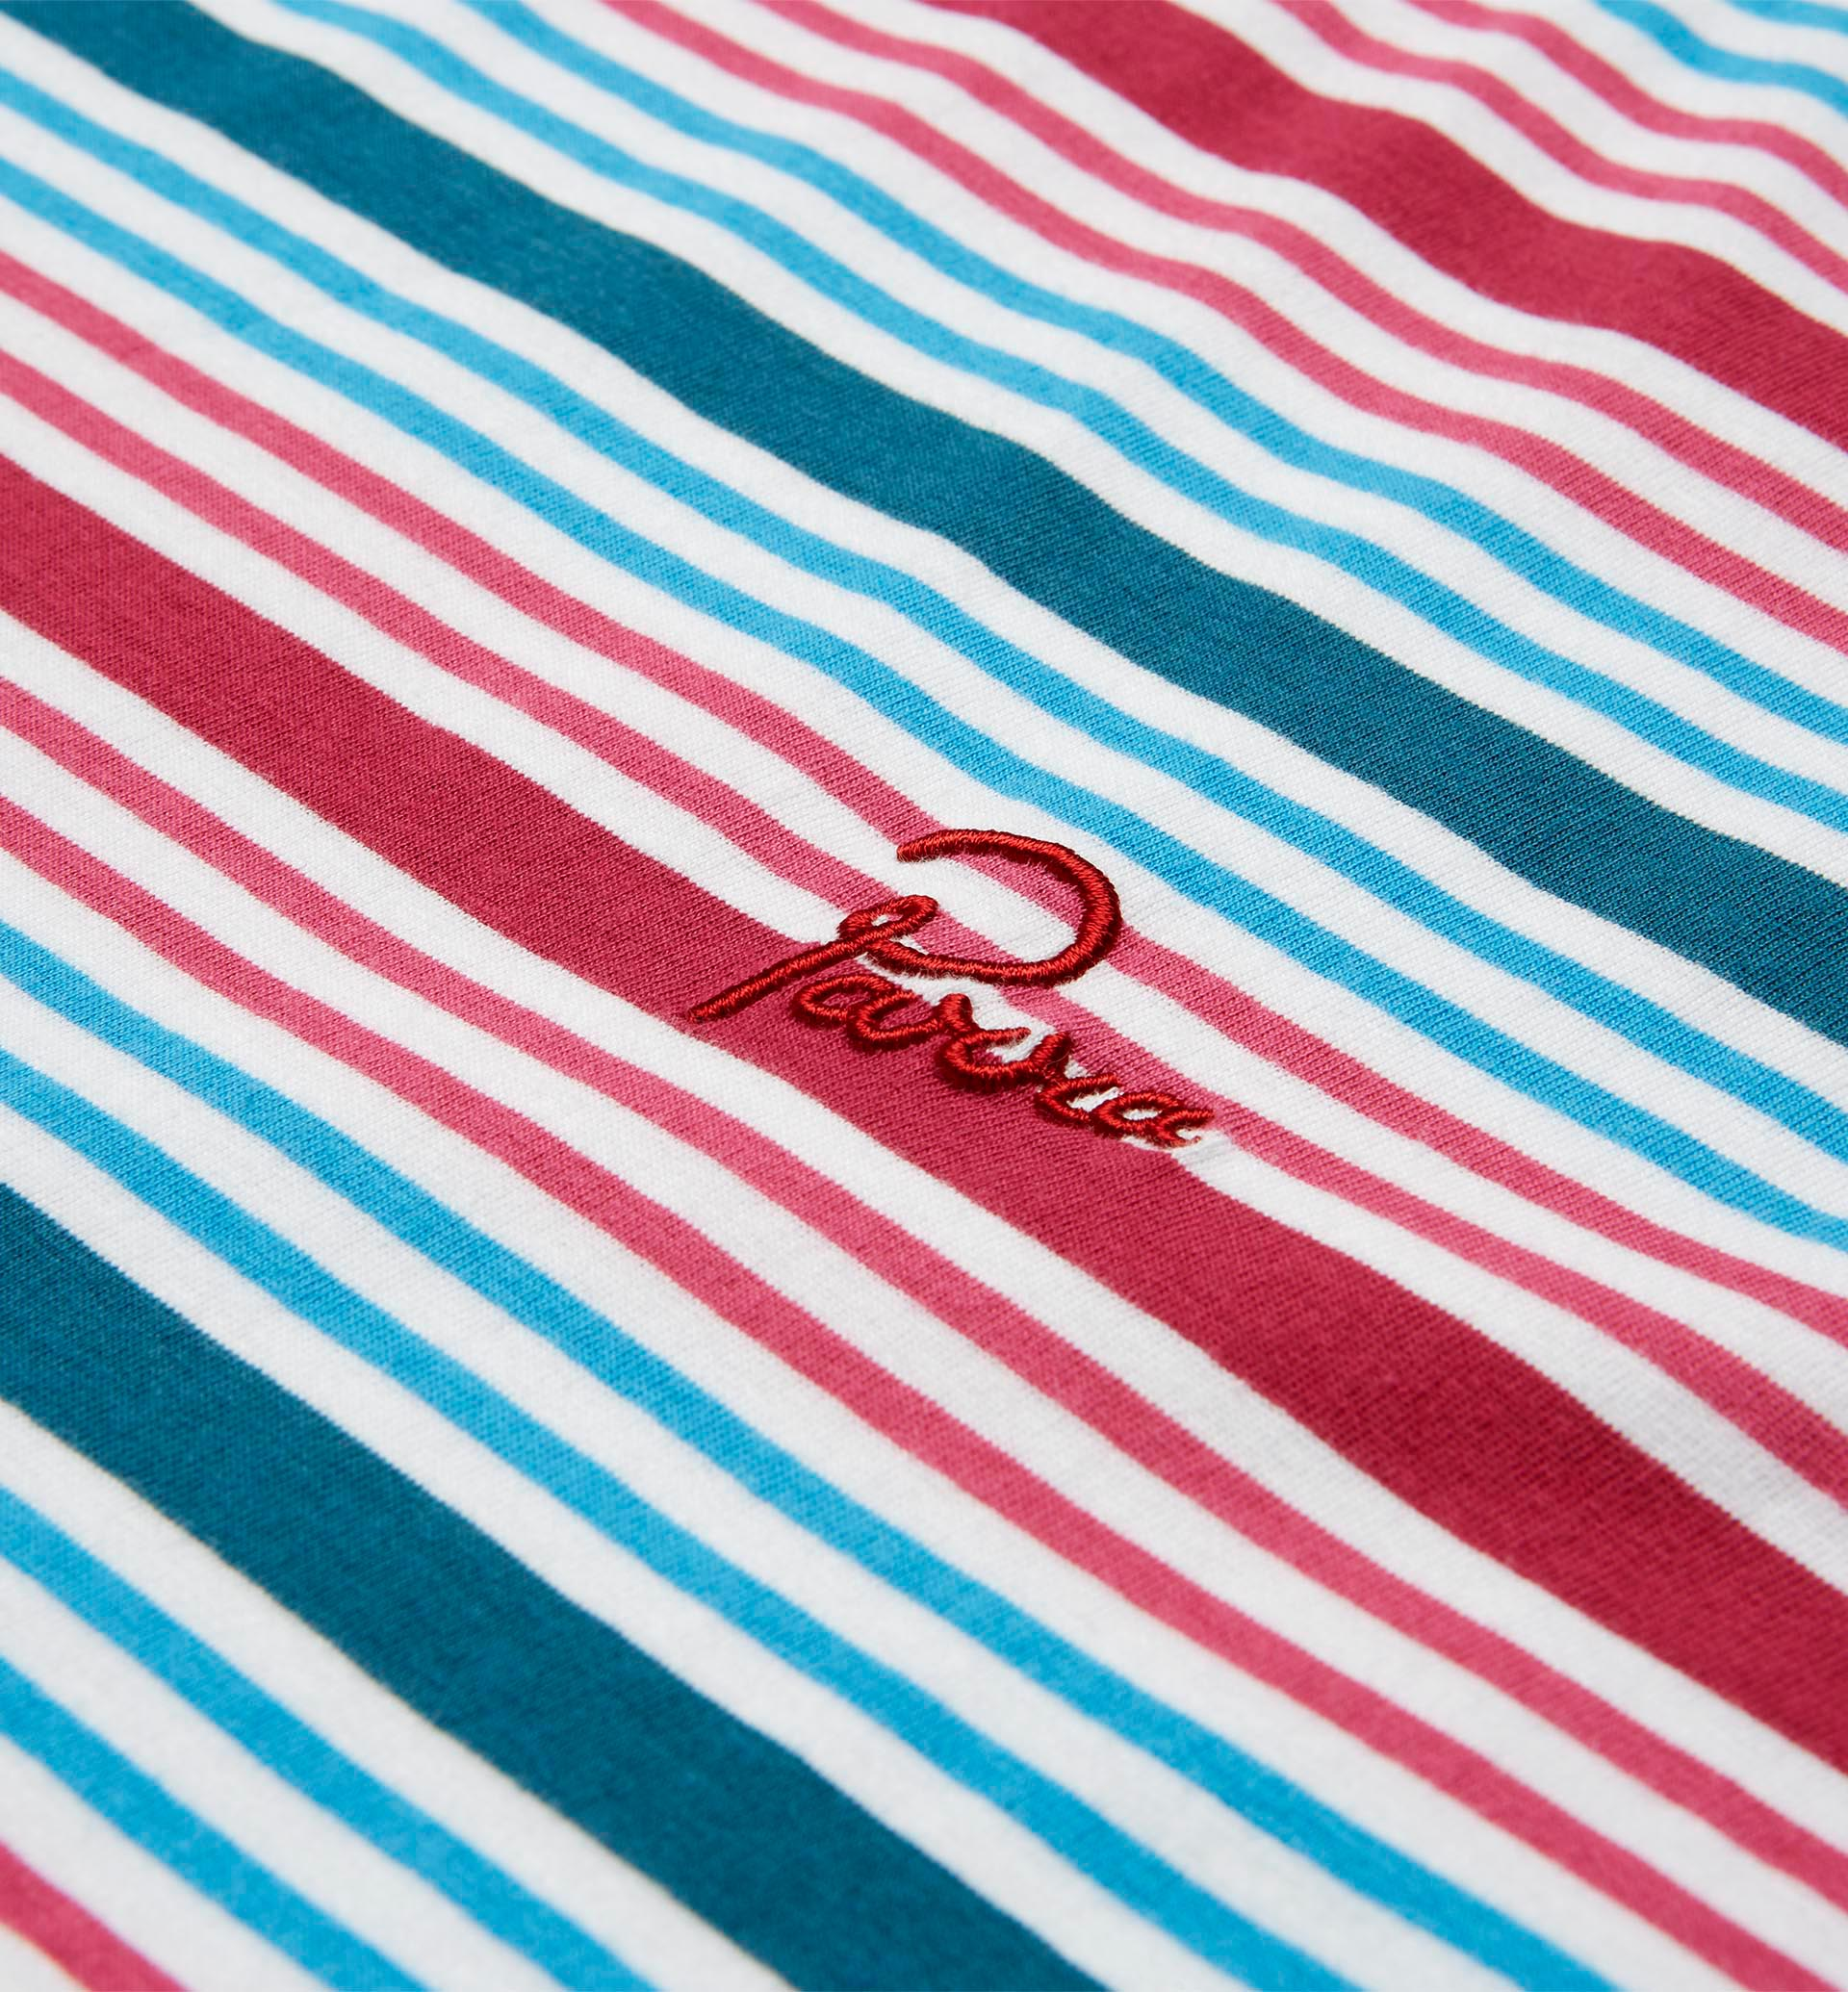 Parra - striped t-shirt